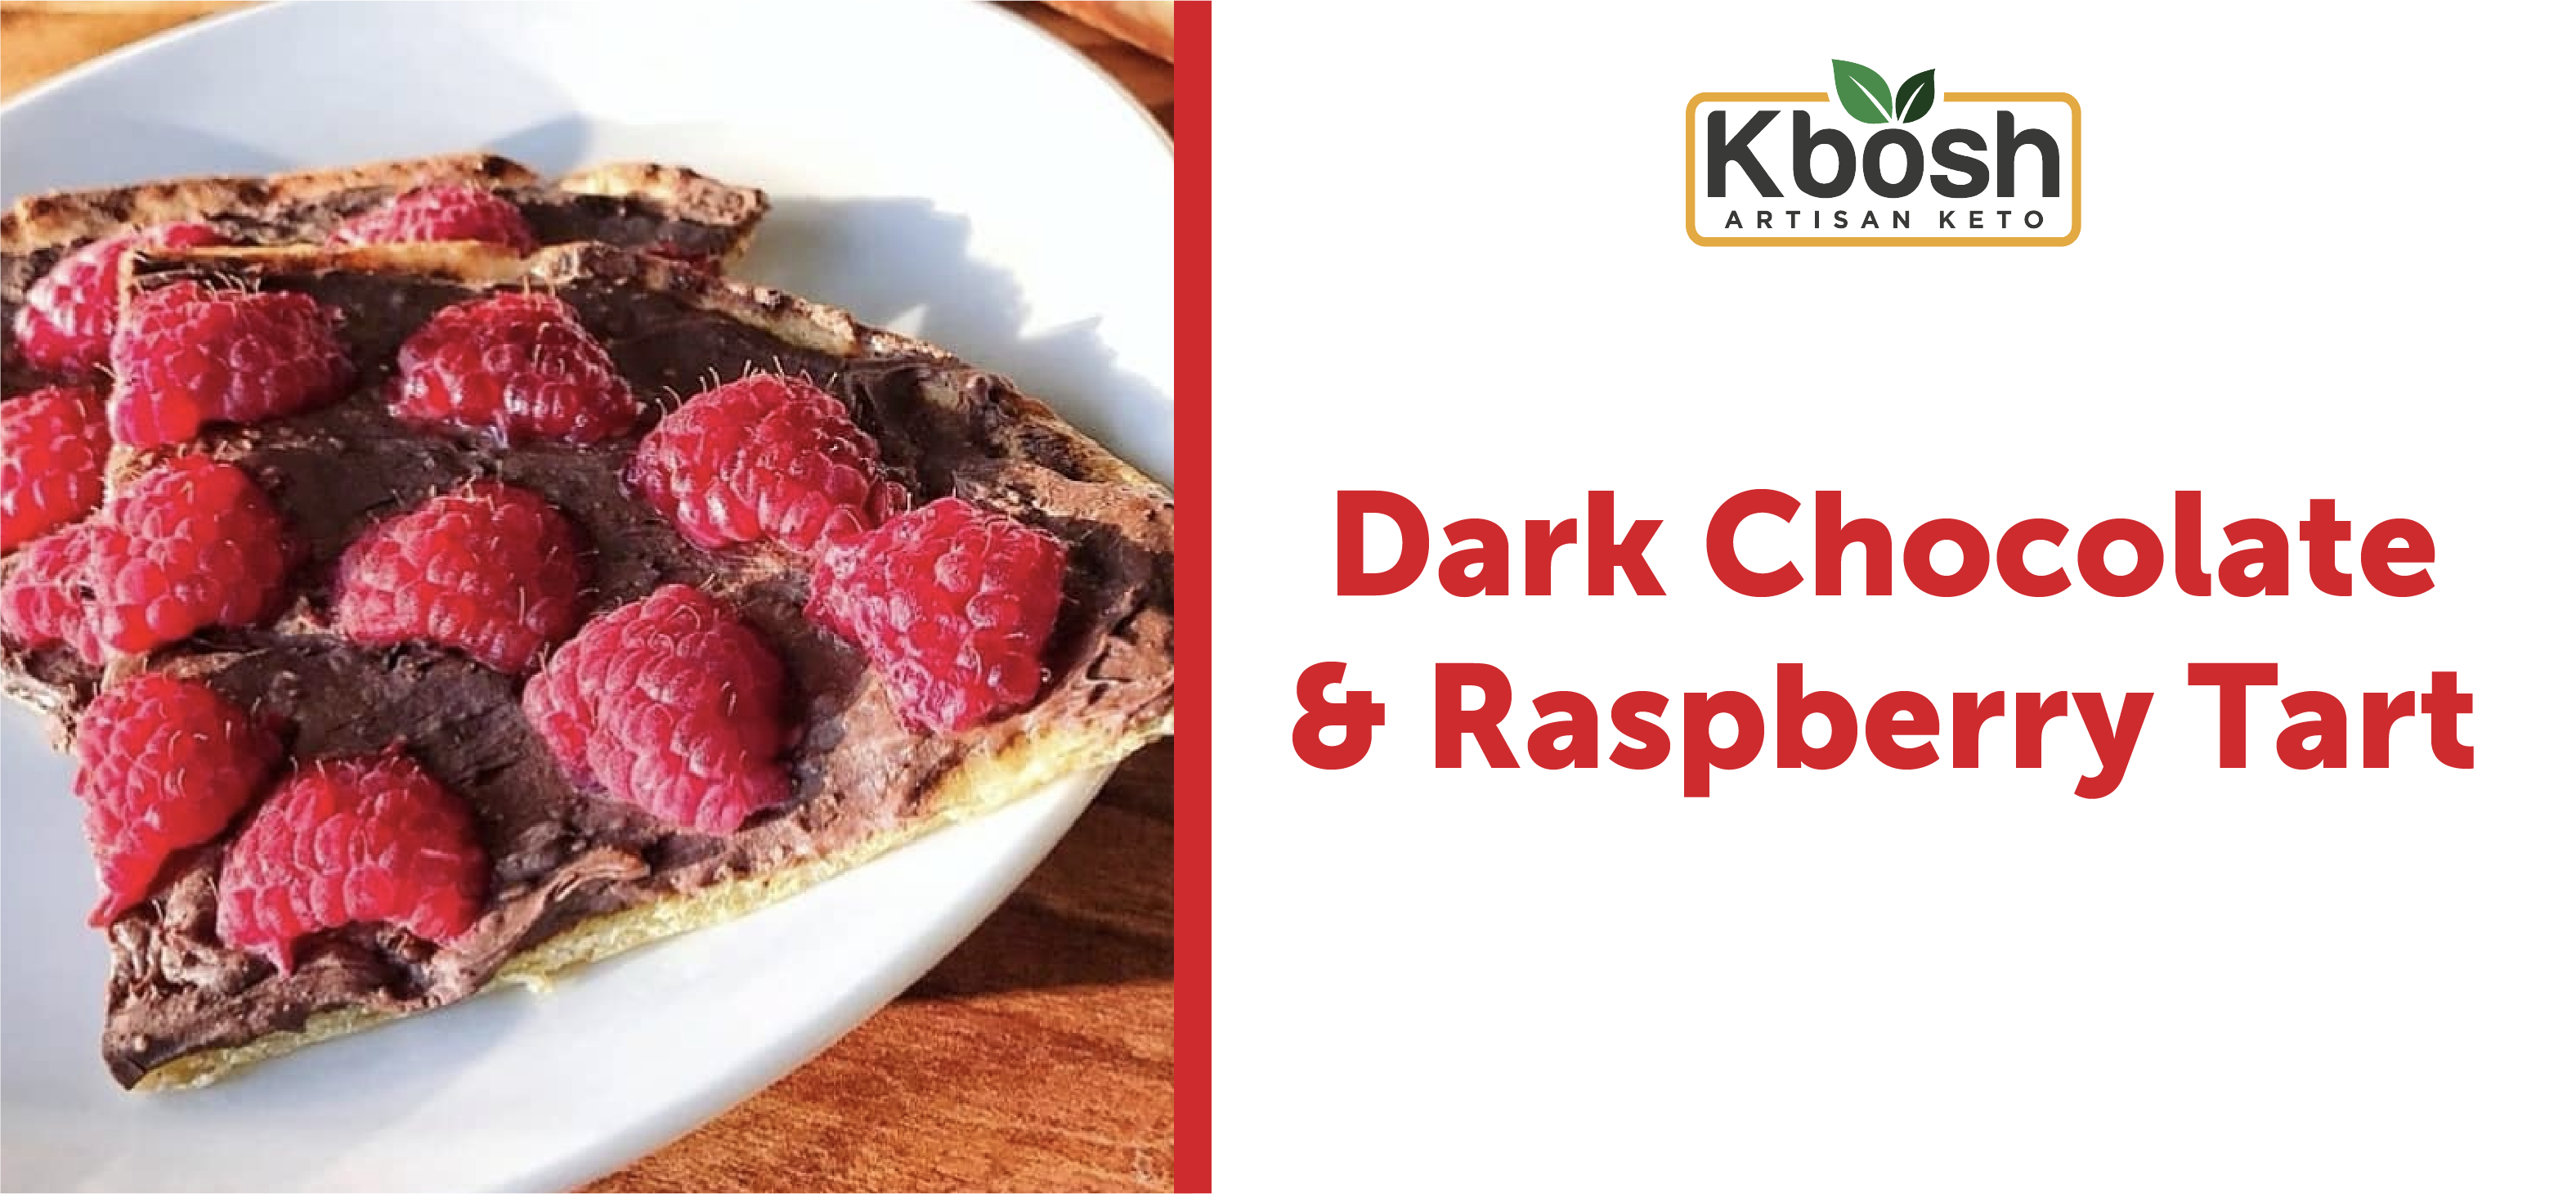 Dark Chocolate & Raspberry Tart on Cauliflower Dessert Crust